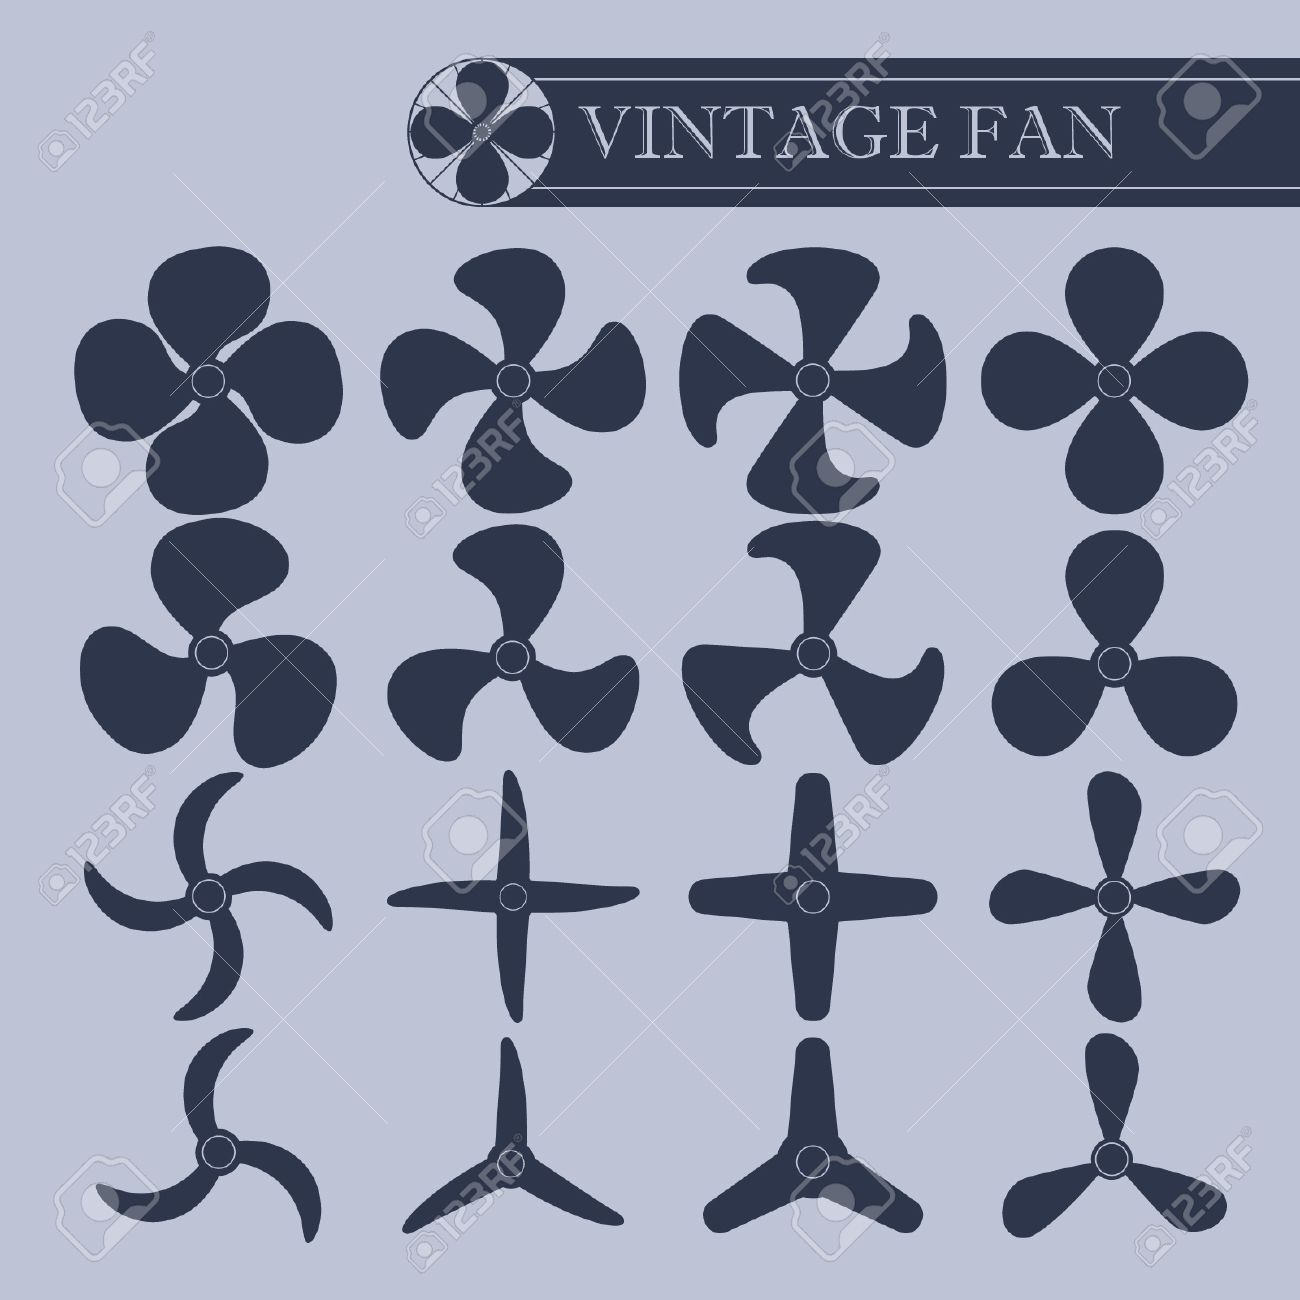 Vintage Fan vintage fan part royalty free cliparts, vectors, and stock